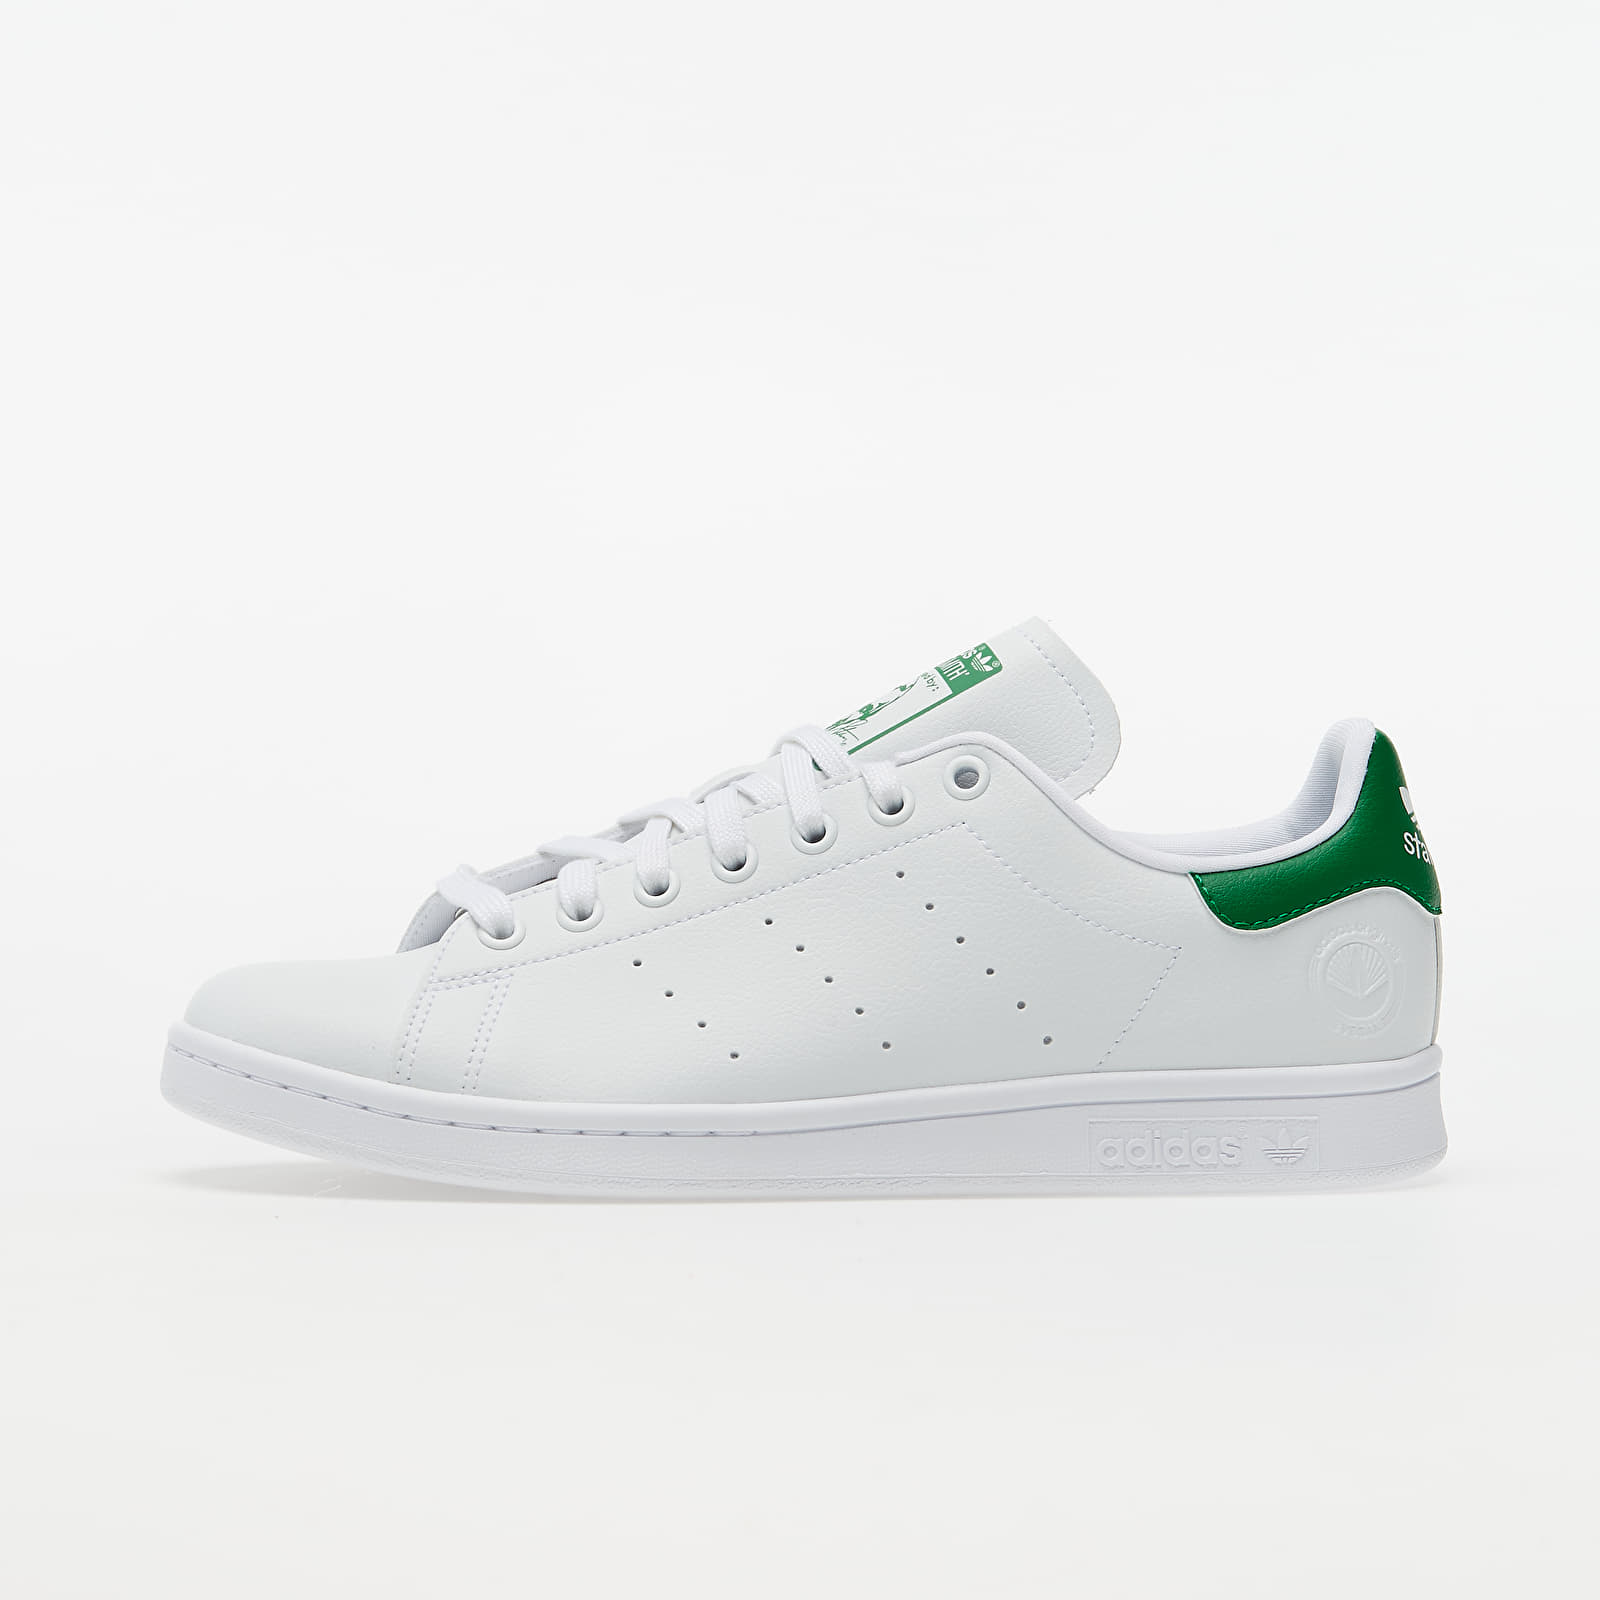 adidas Stan Smith Vegan Ftw White/ Green/ Ftw White EUR 46